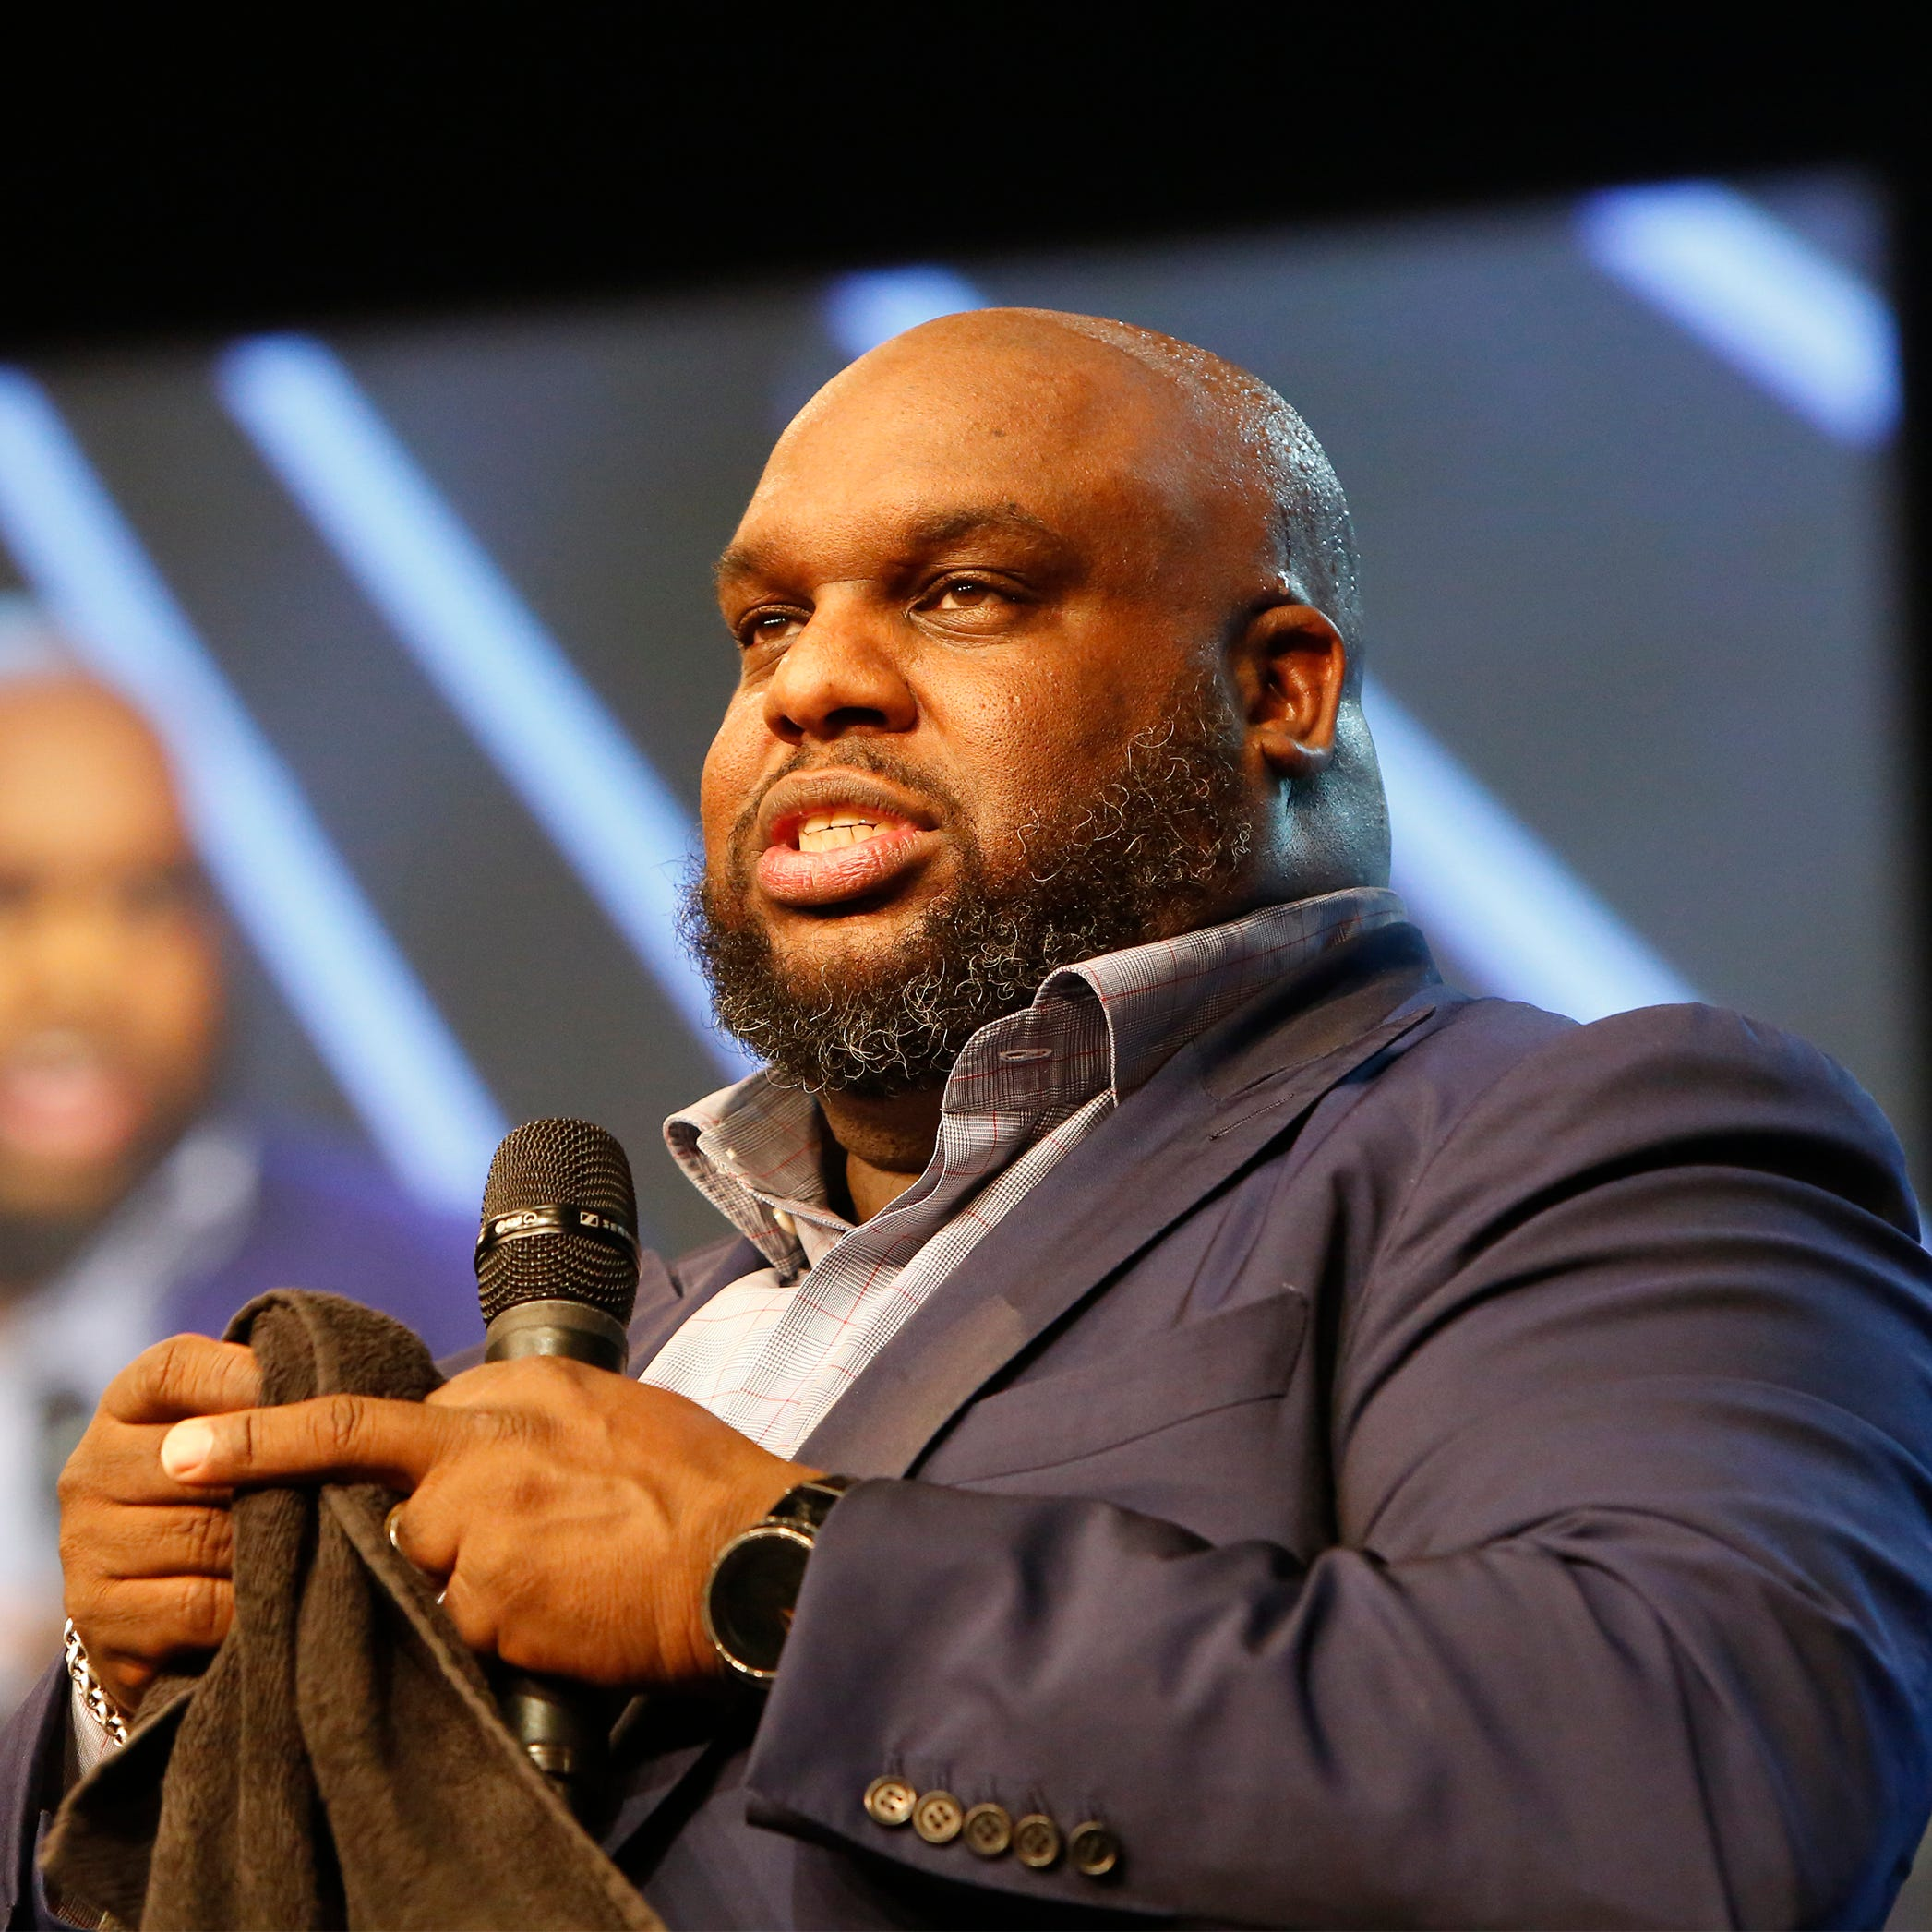 Pastor challenges John Gray to follow Jesus' command of minimalism